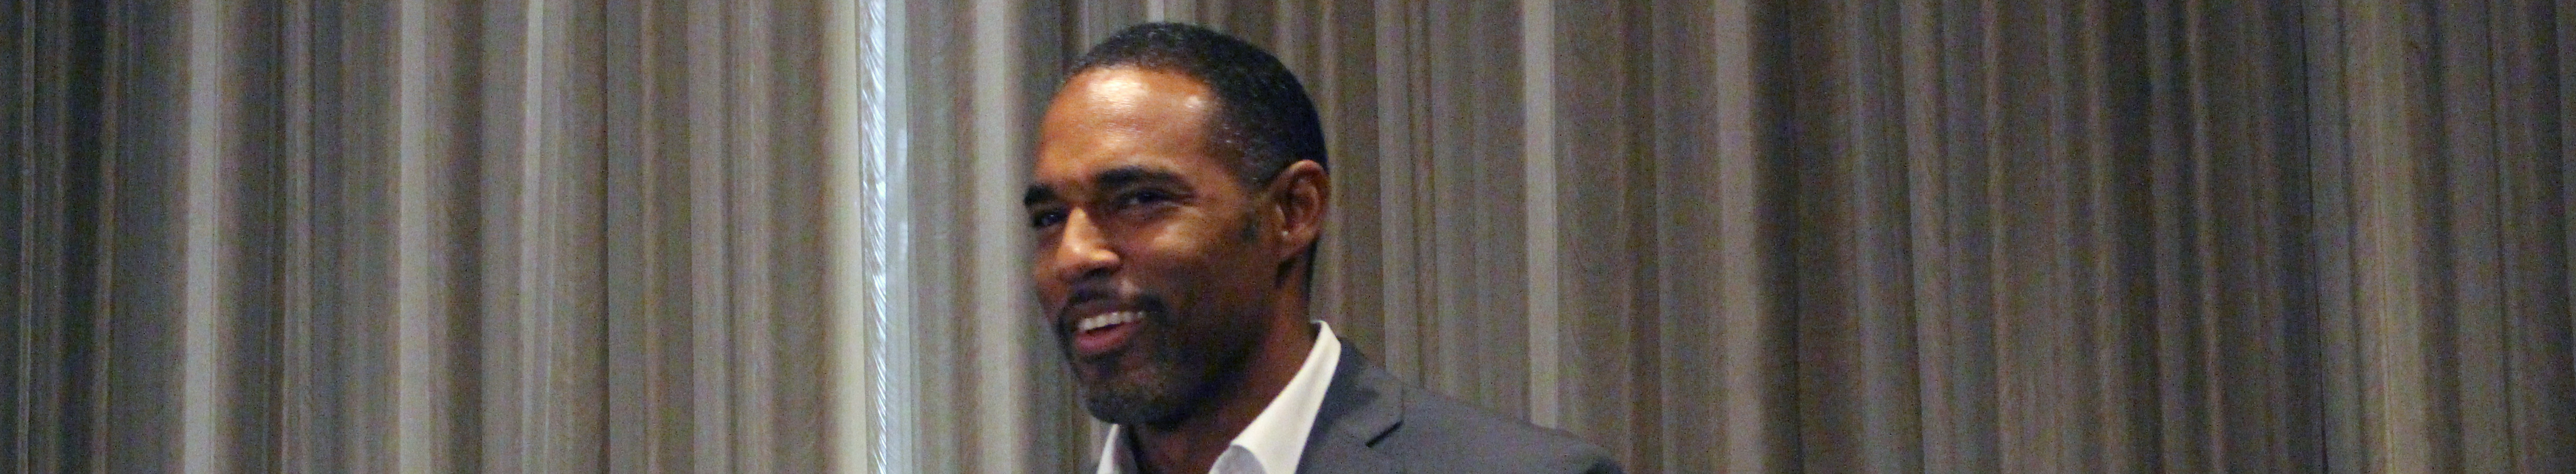 Jason George standing at a podium with the sign Media Access Awards